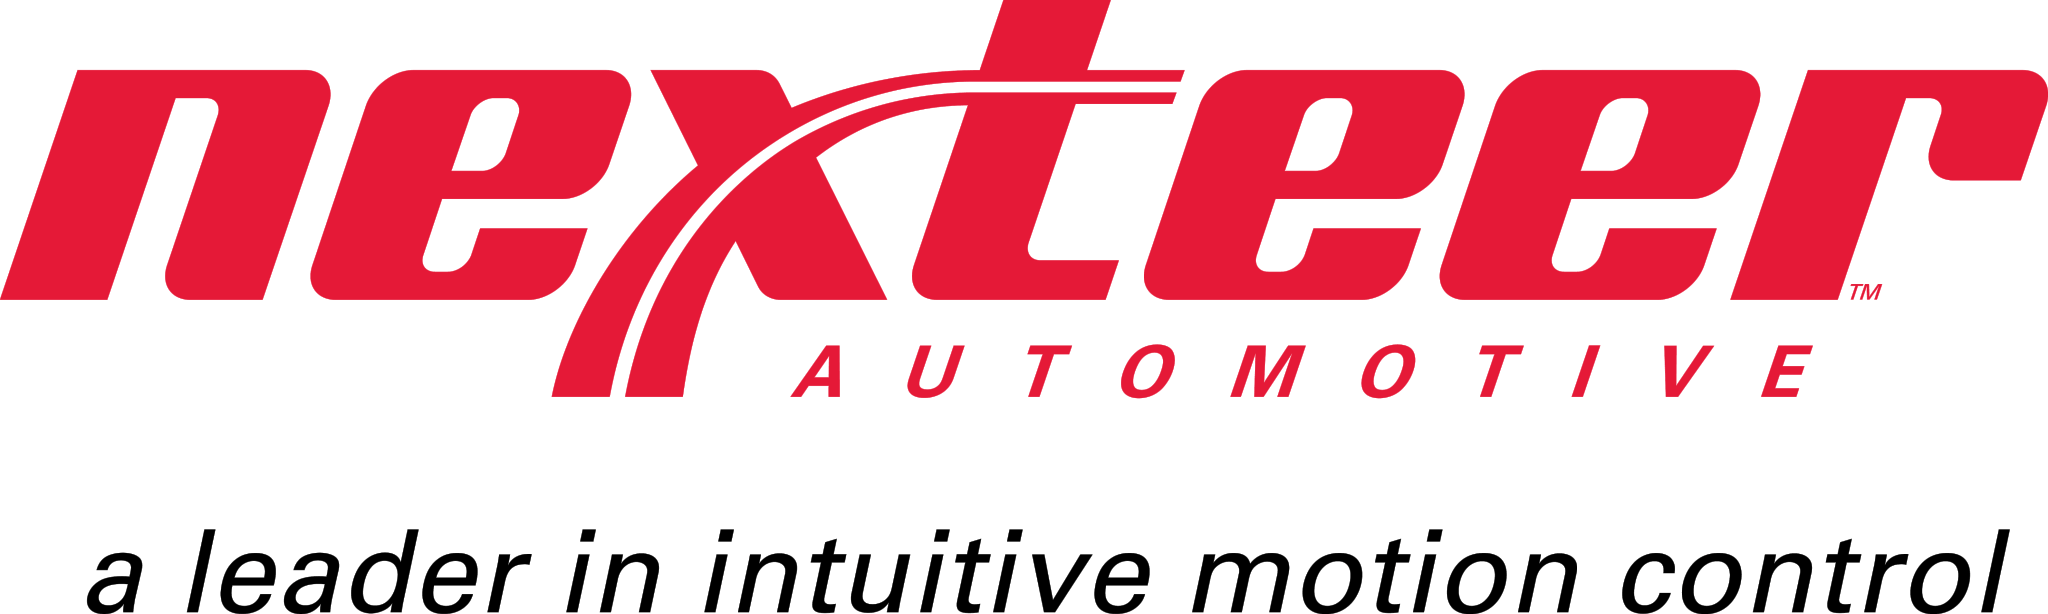 Nexteer Automotive logo